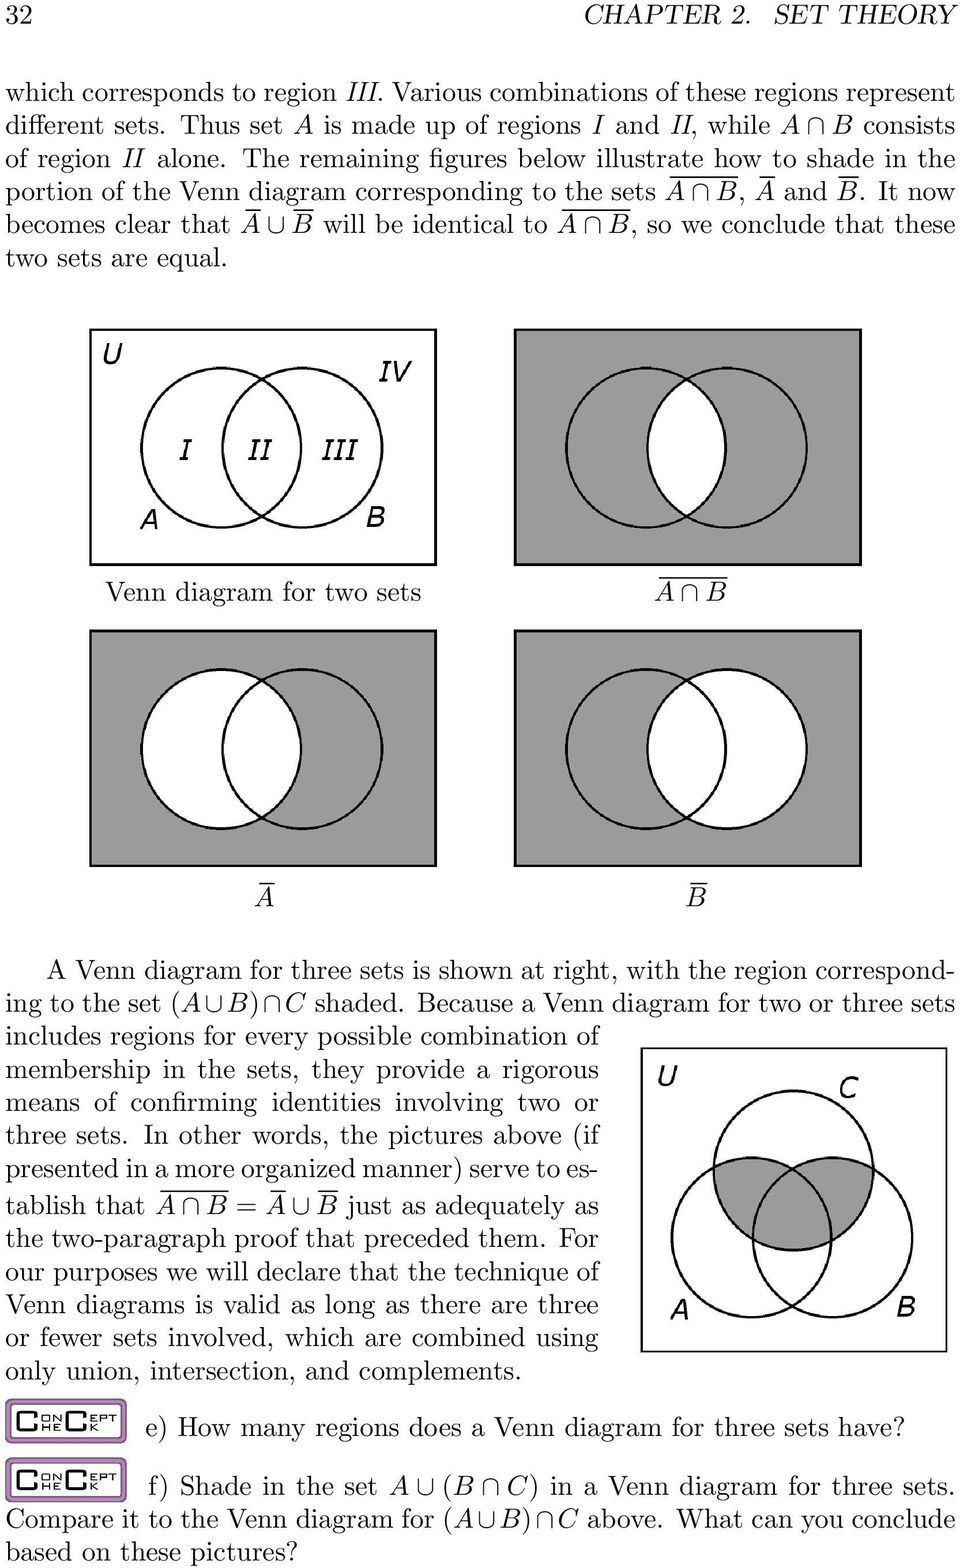 The remaining figures below illustrate how to shade in the portion of the Venn diagram corresponding to the sets A B, A and B.